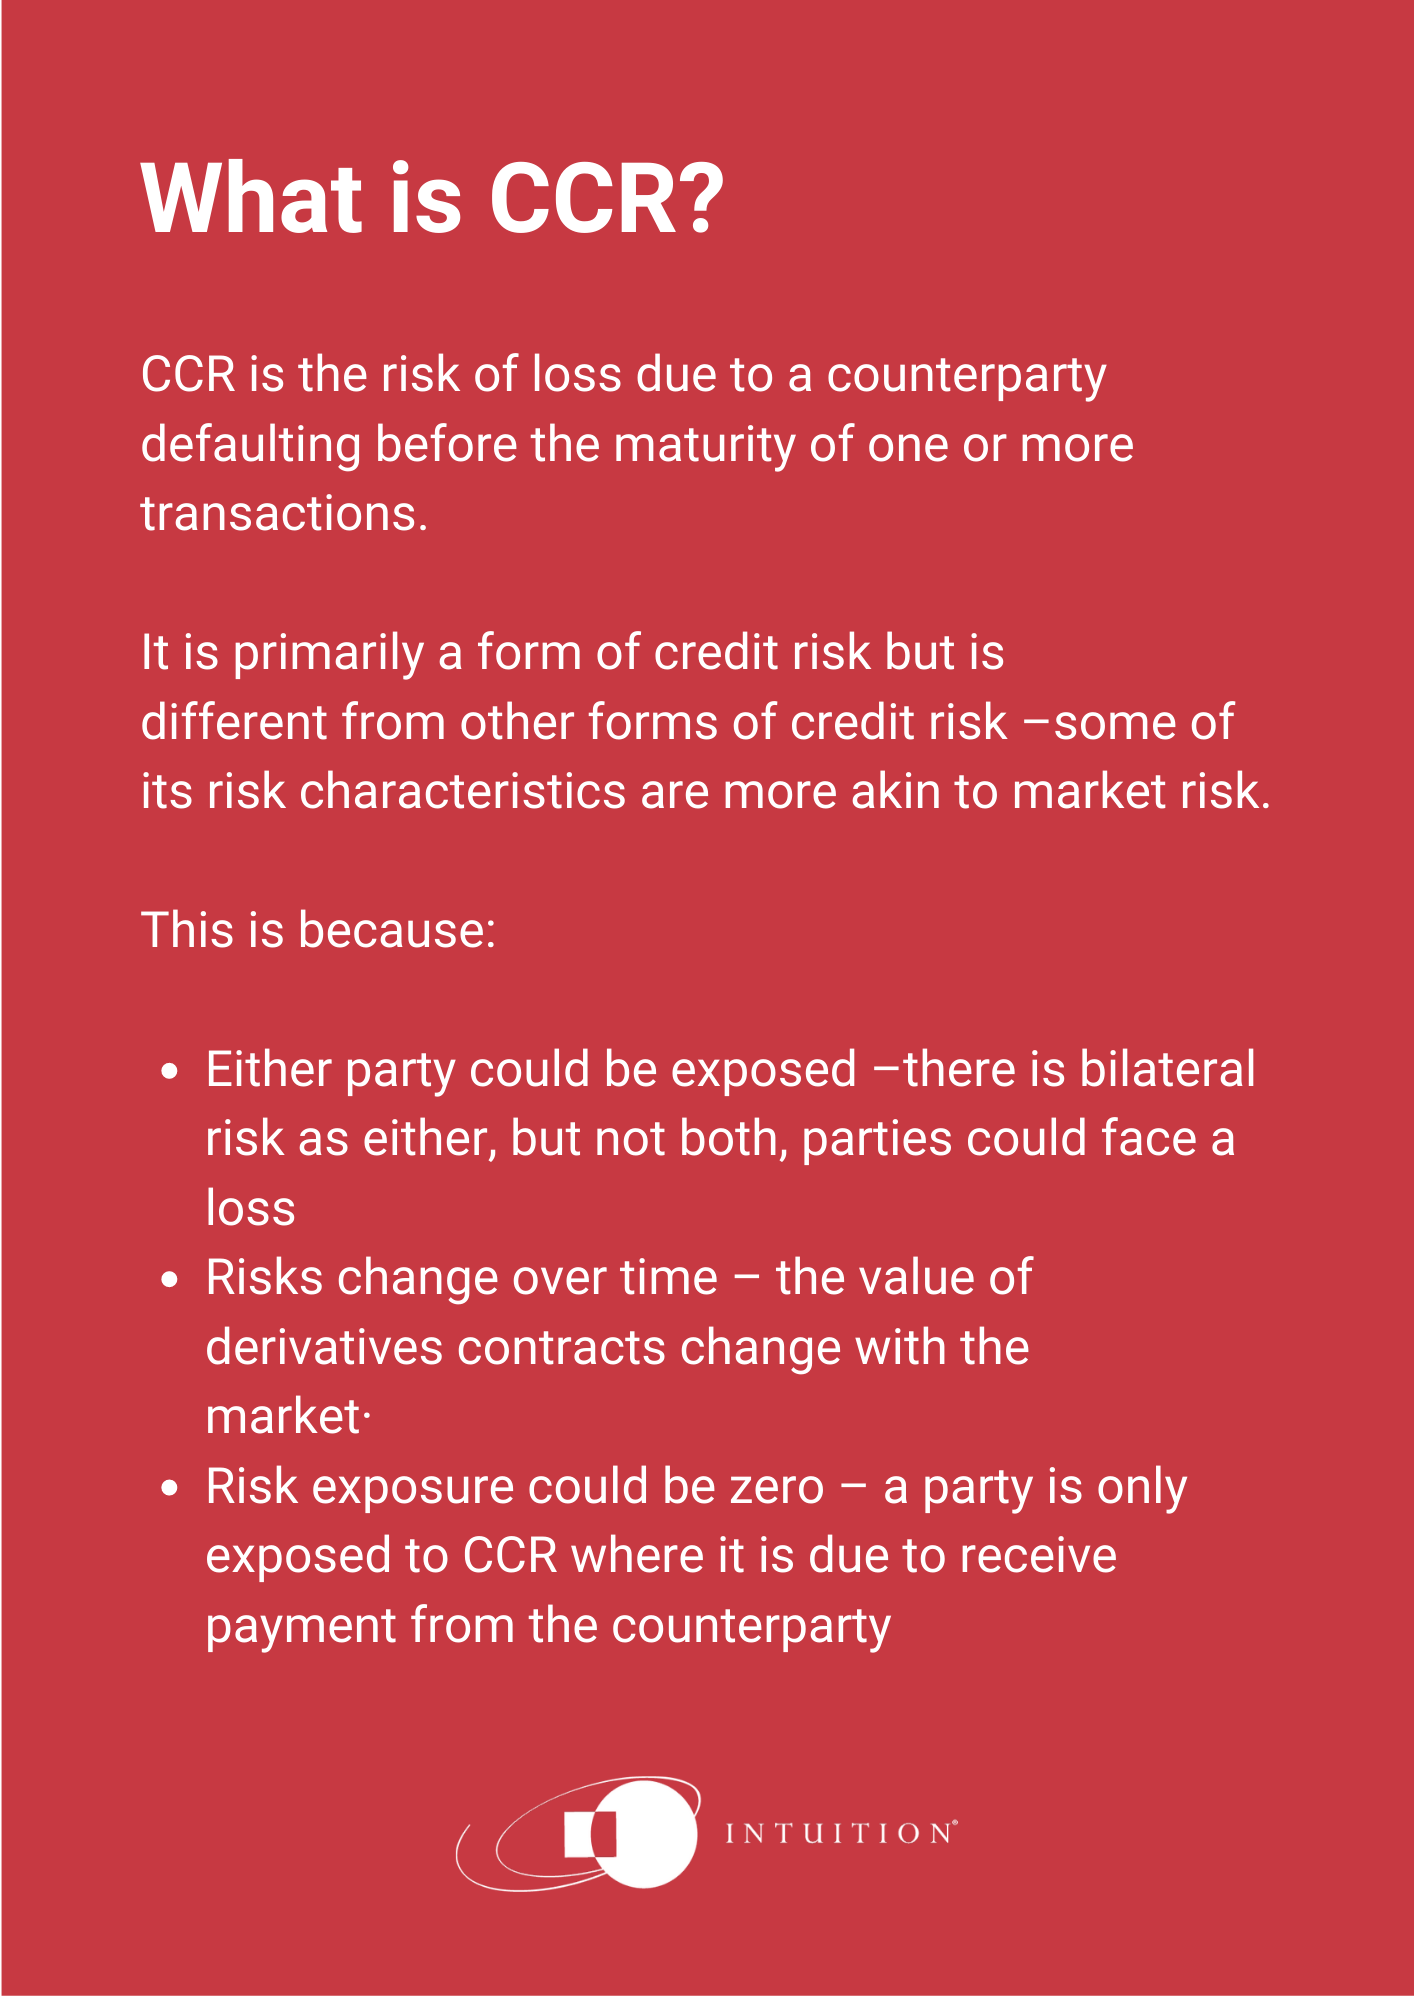 what is ccr?